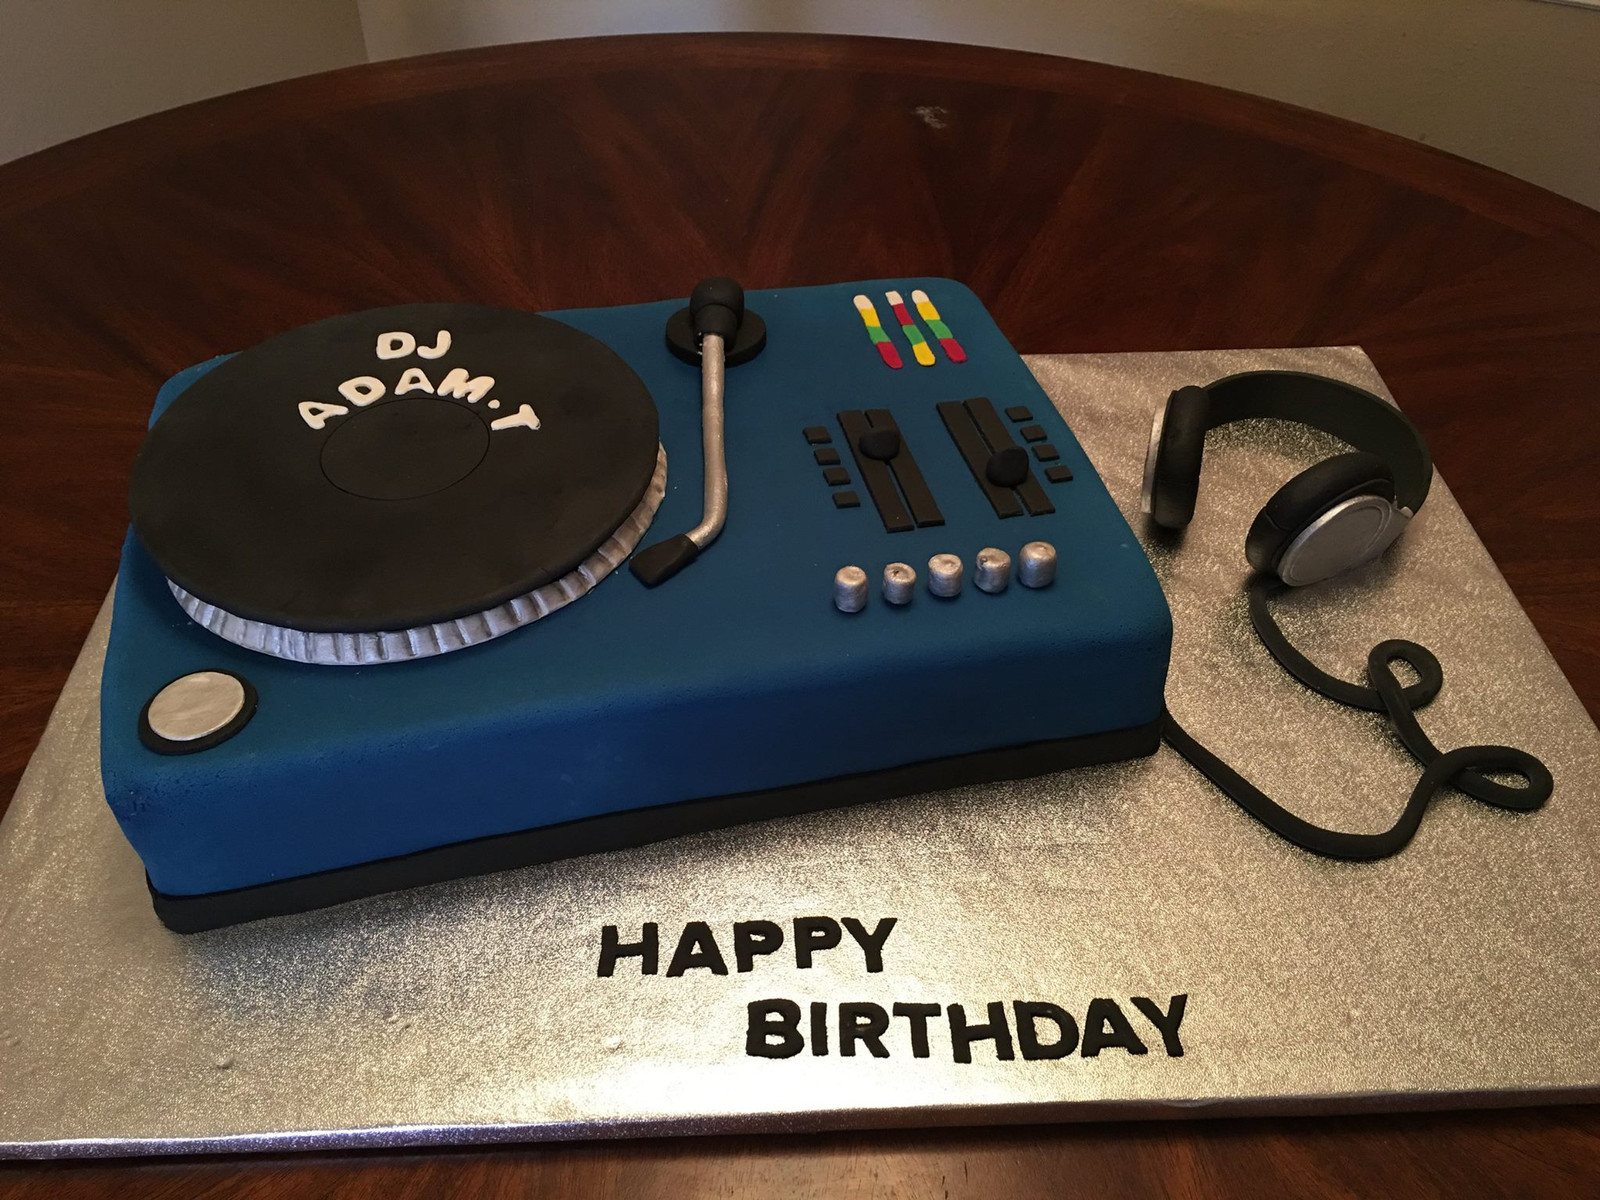 Astounding Dj Turntable Birthday Cake Birthday Cards Printable Benkemecafe Filternl